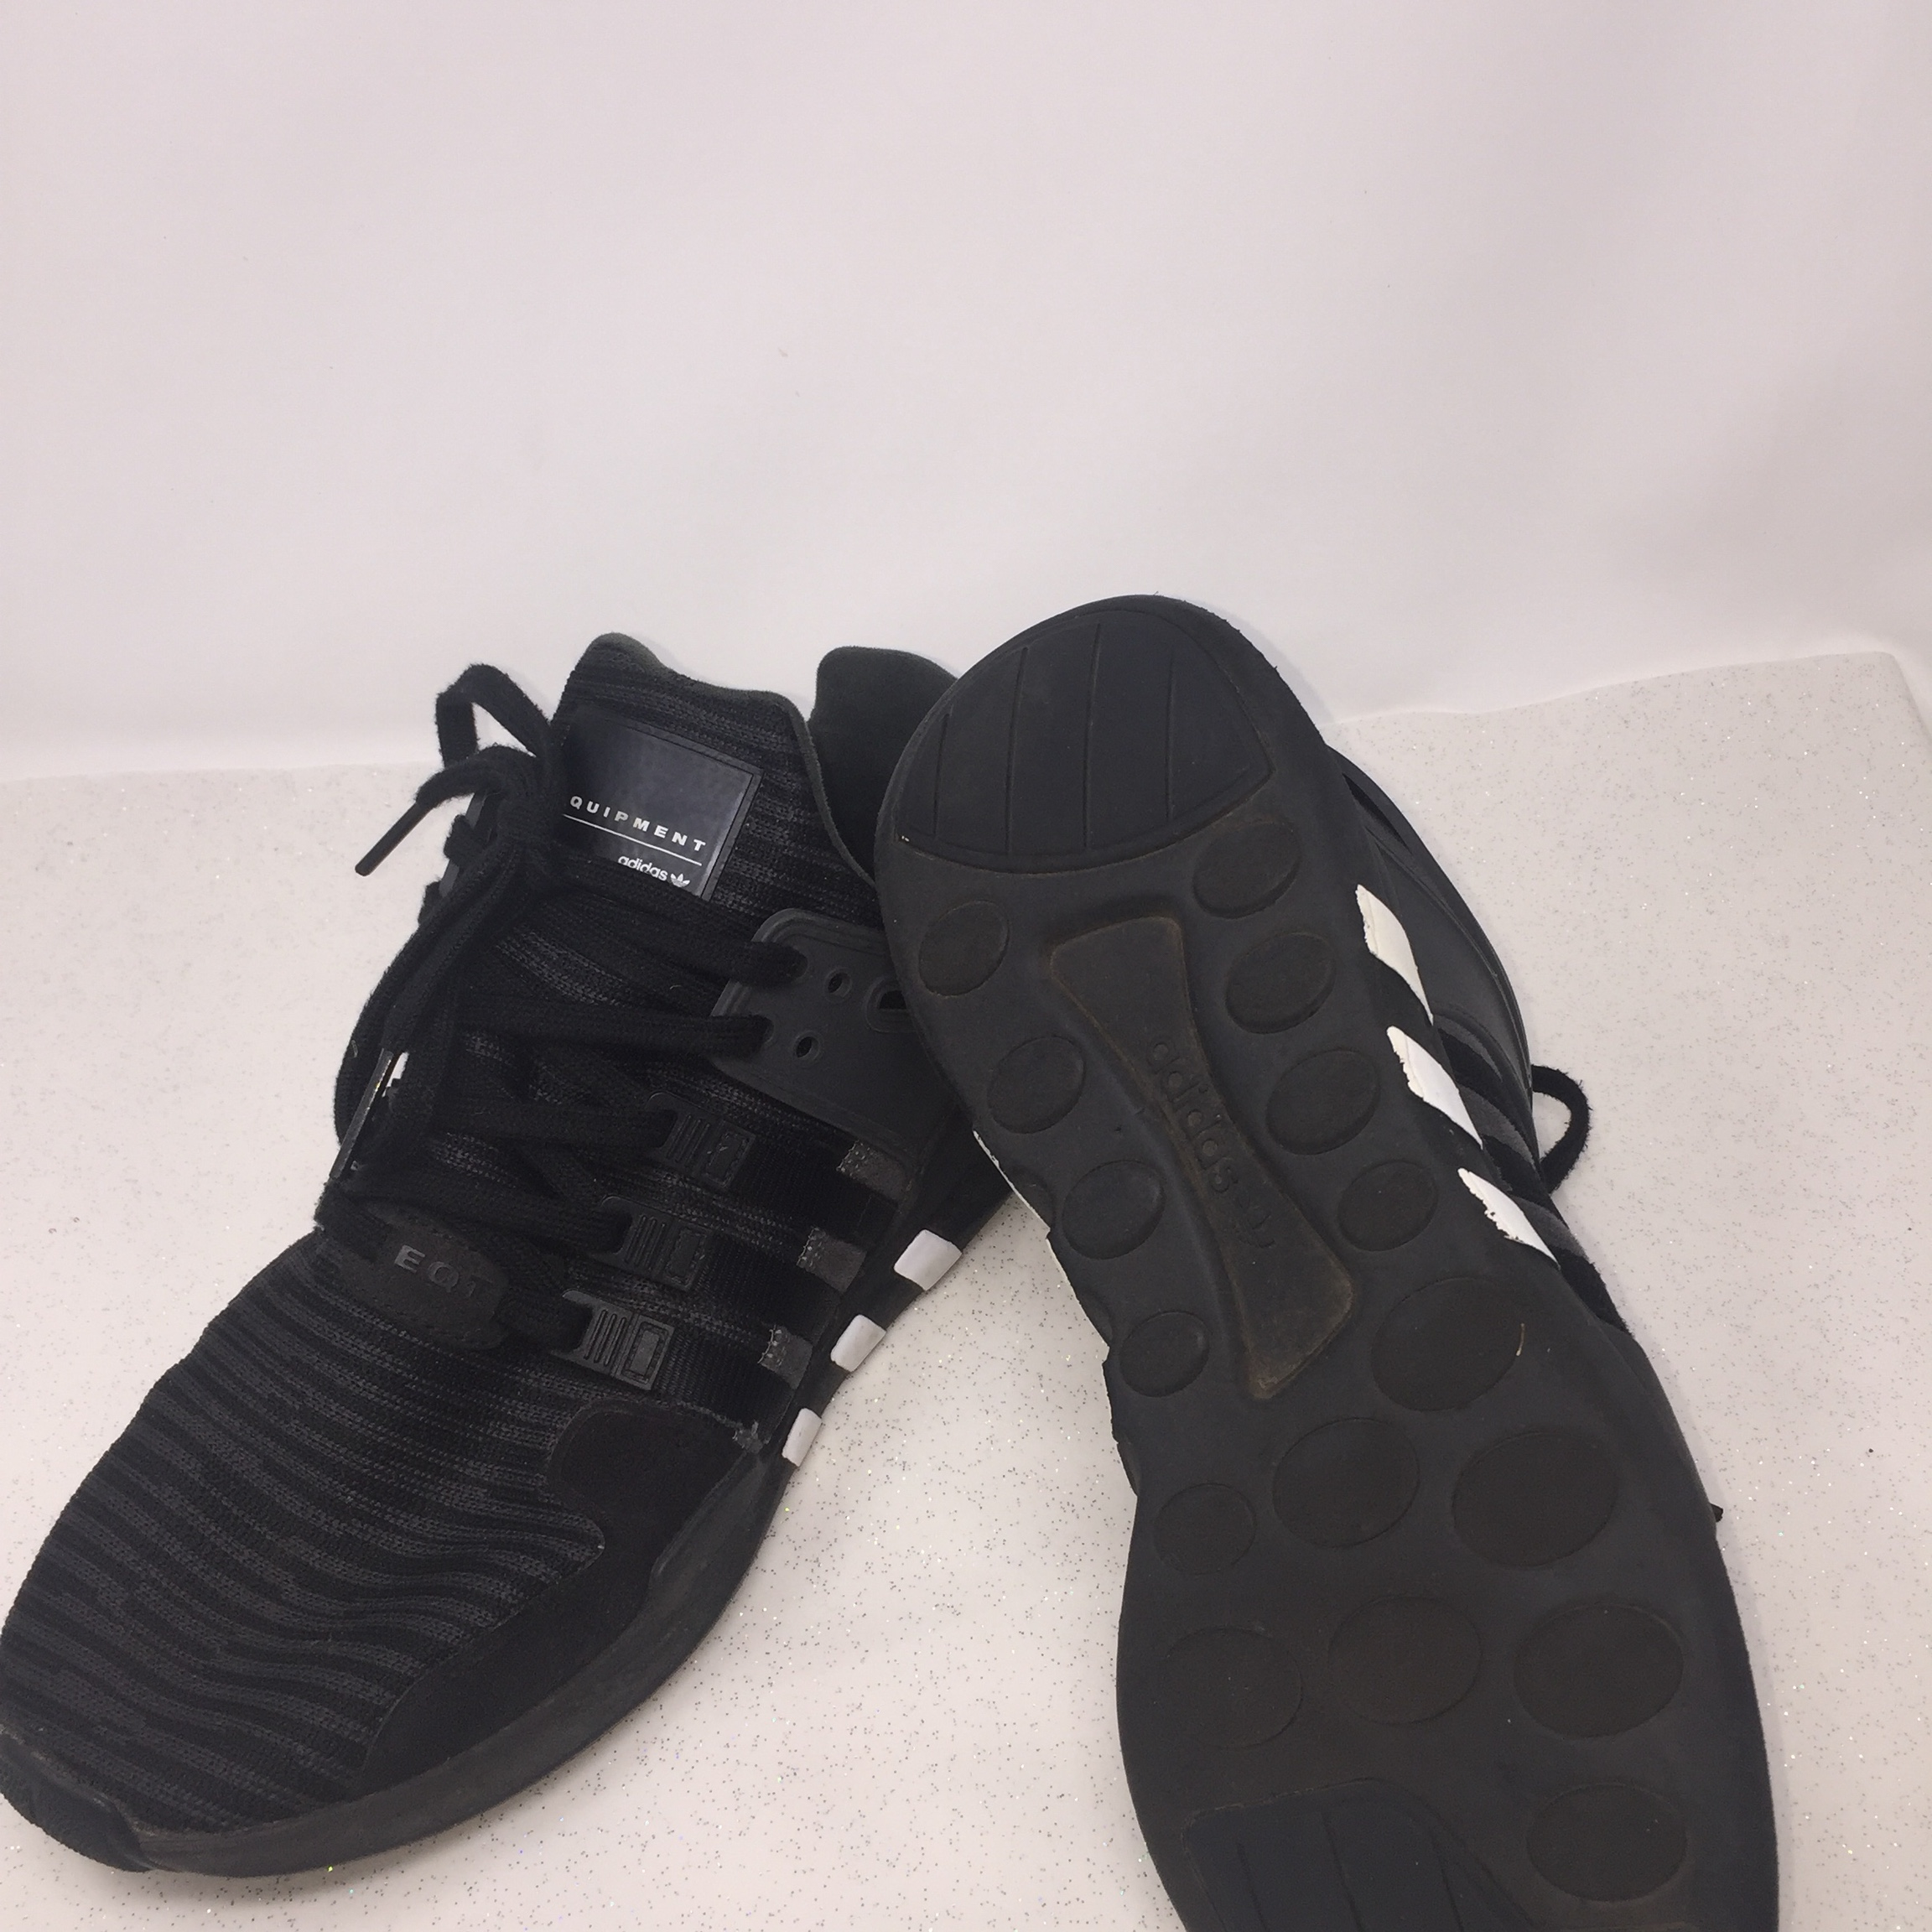 Adidas EQT Support ADV Core BlackUtility BlackDgh Solid Grey Shoes